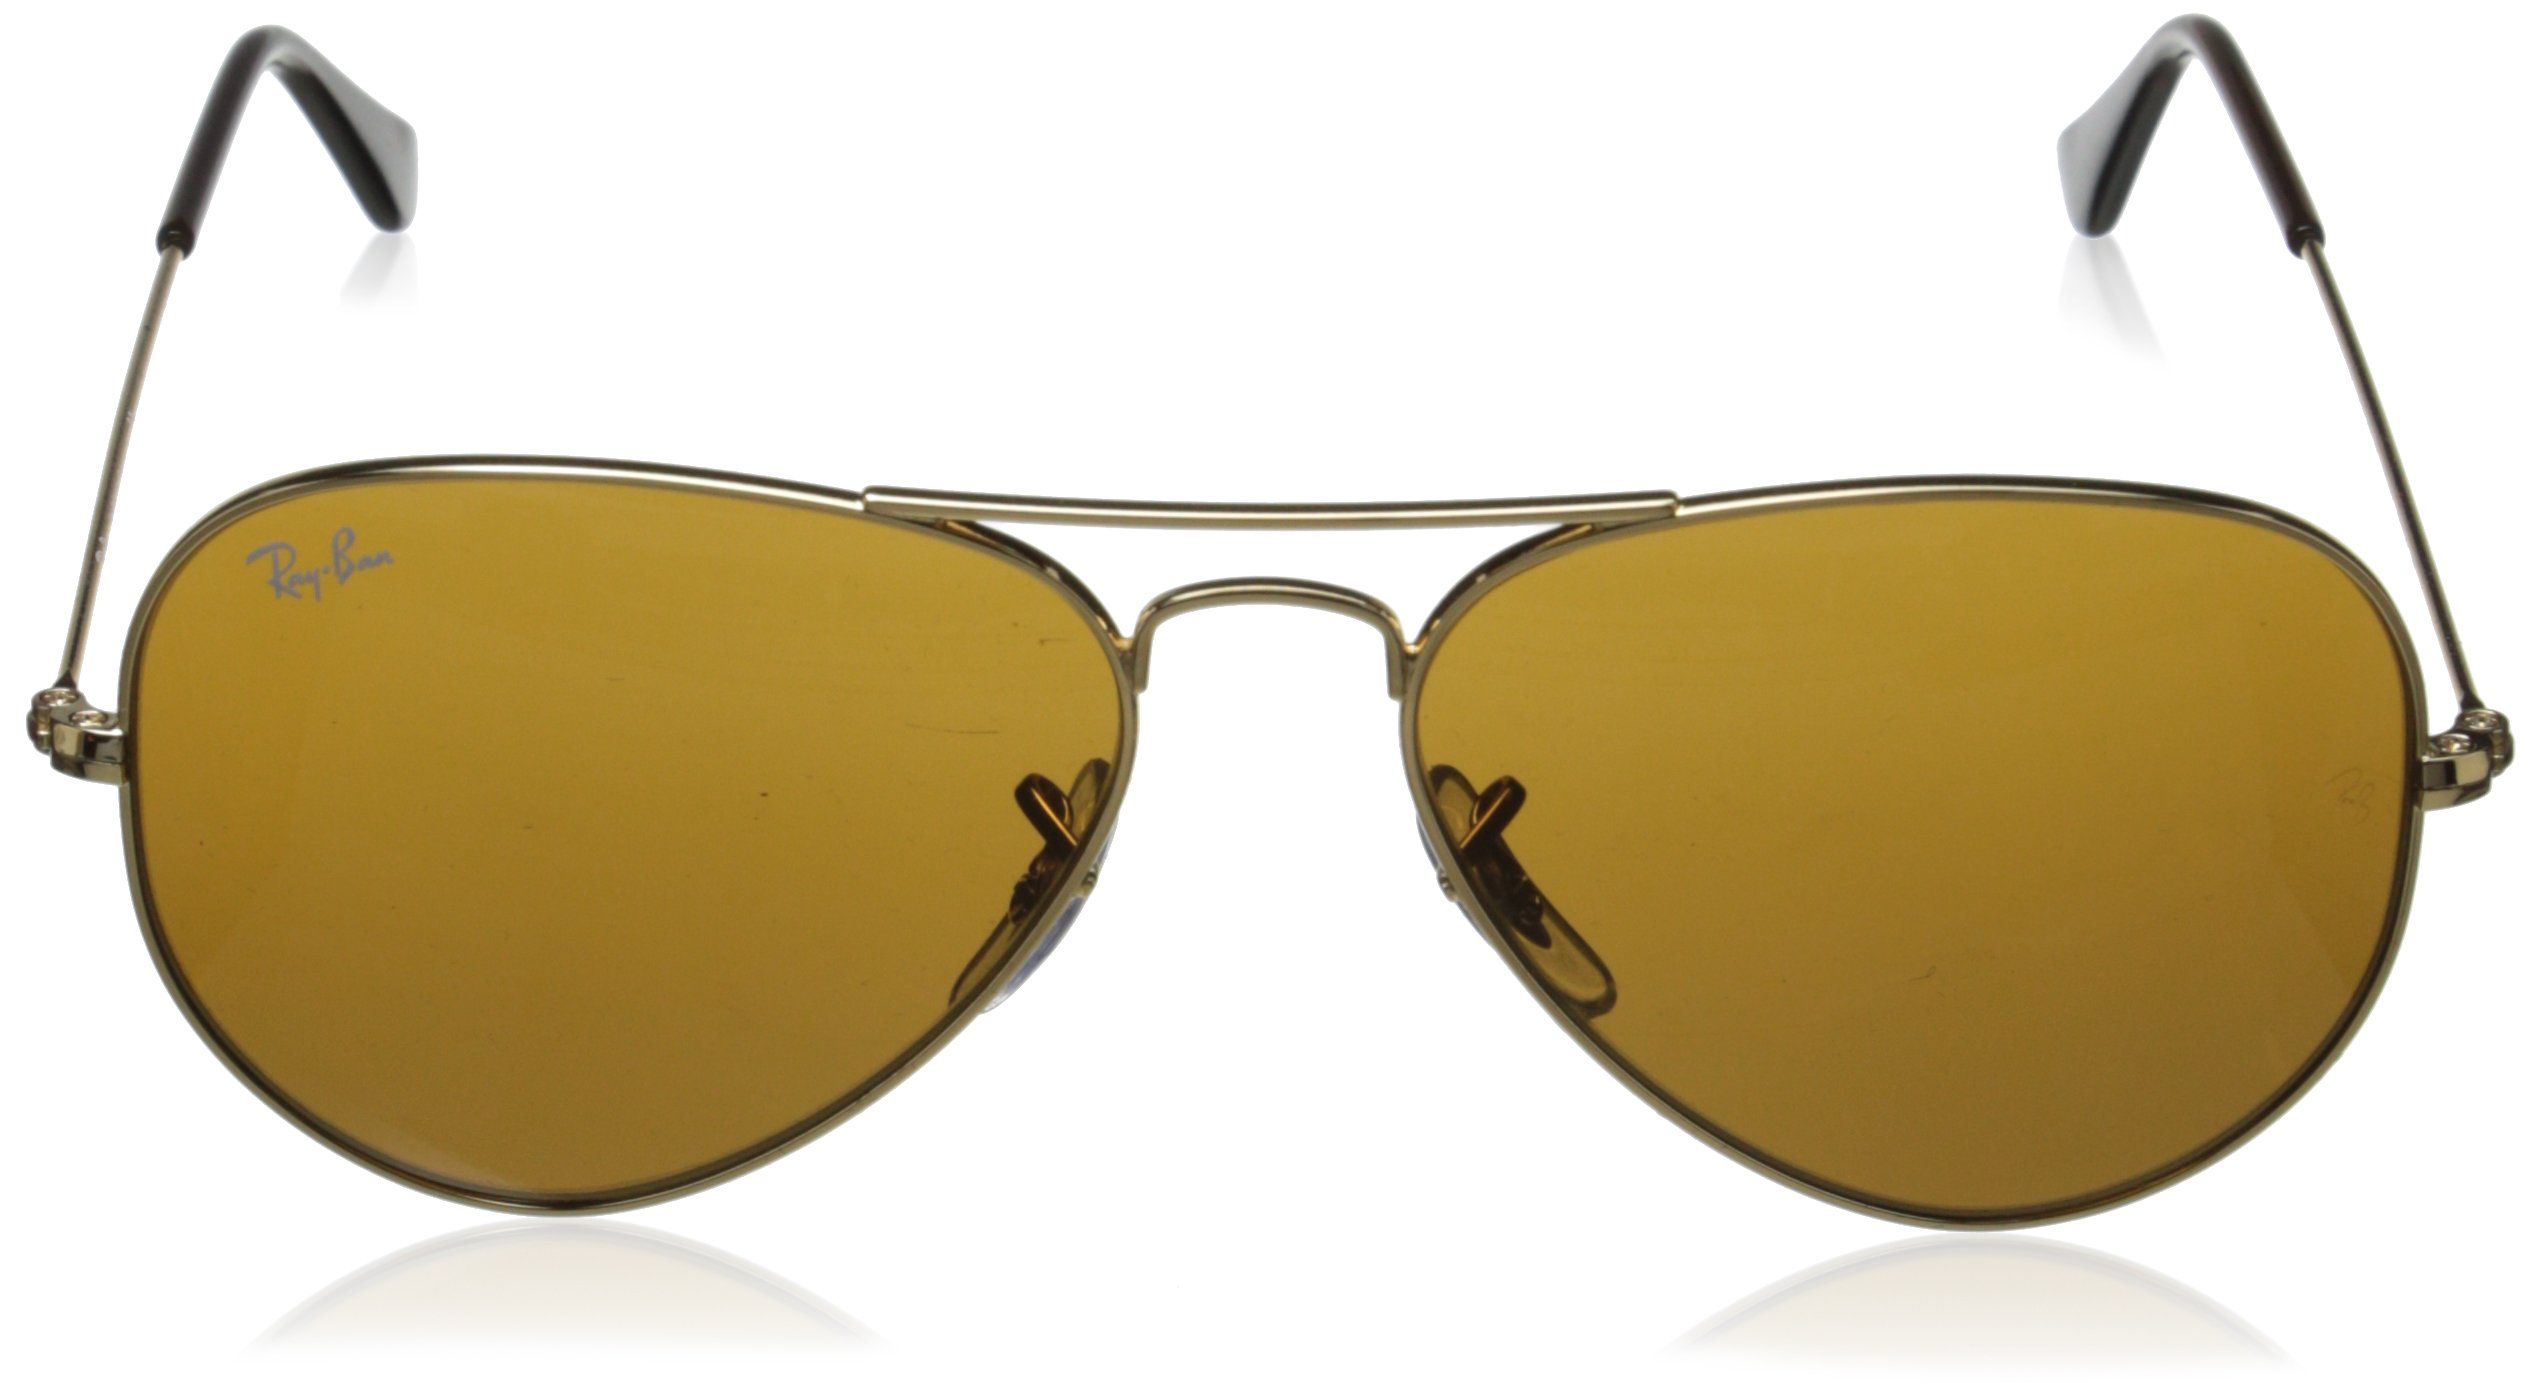 a895d035d0 Ray-Ban AVIATOR LARGE METAL - GOLD Frame CRYSTAL BROWN Lenses 55mm Non- Polarized. Product